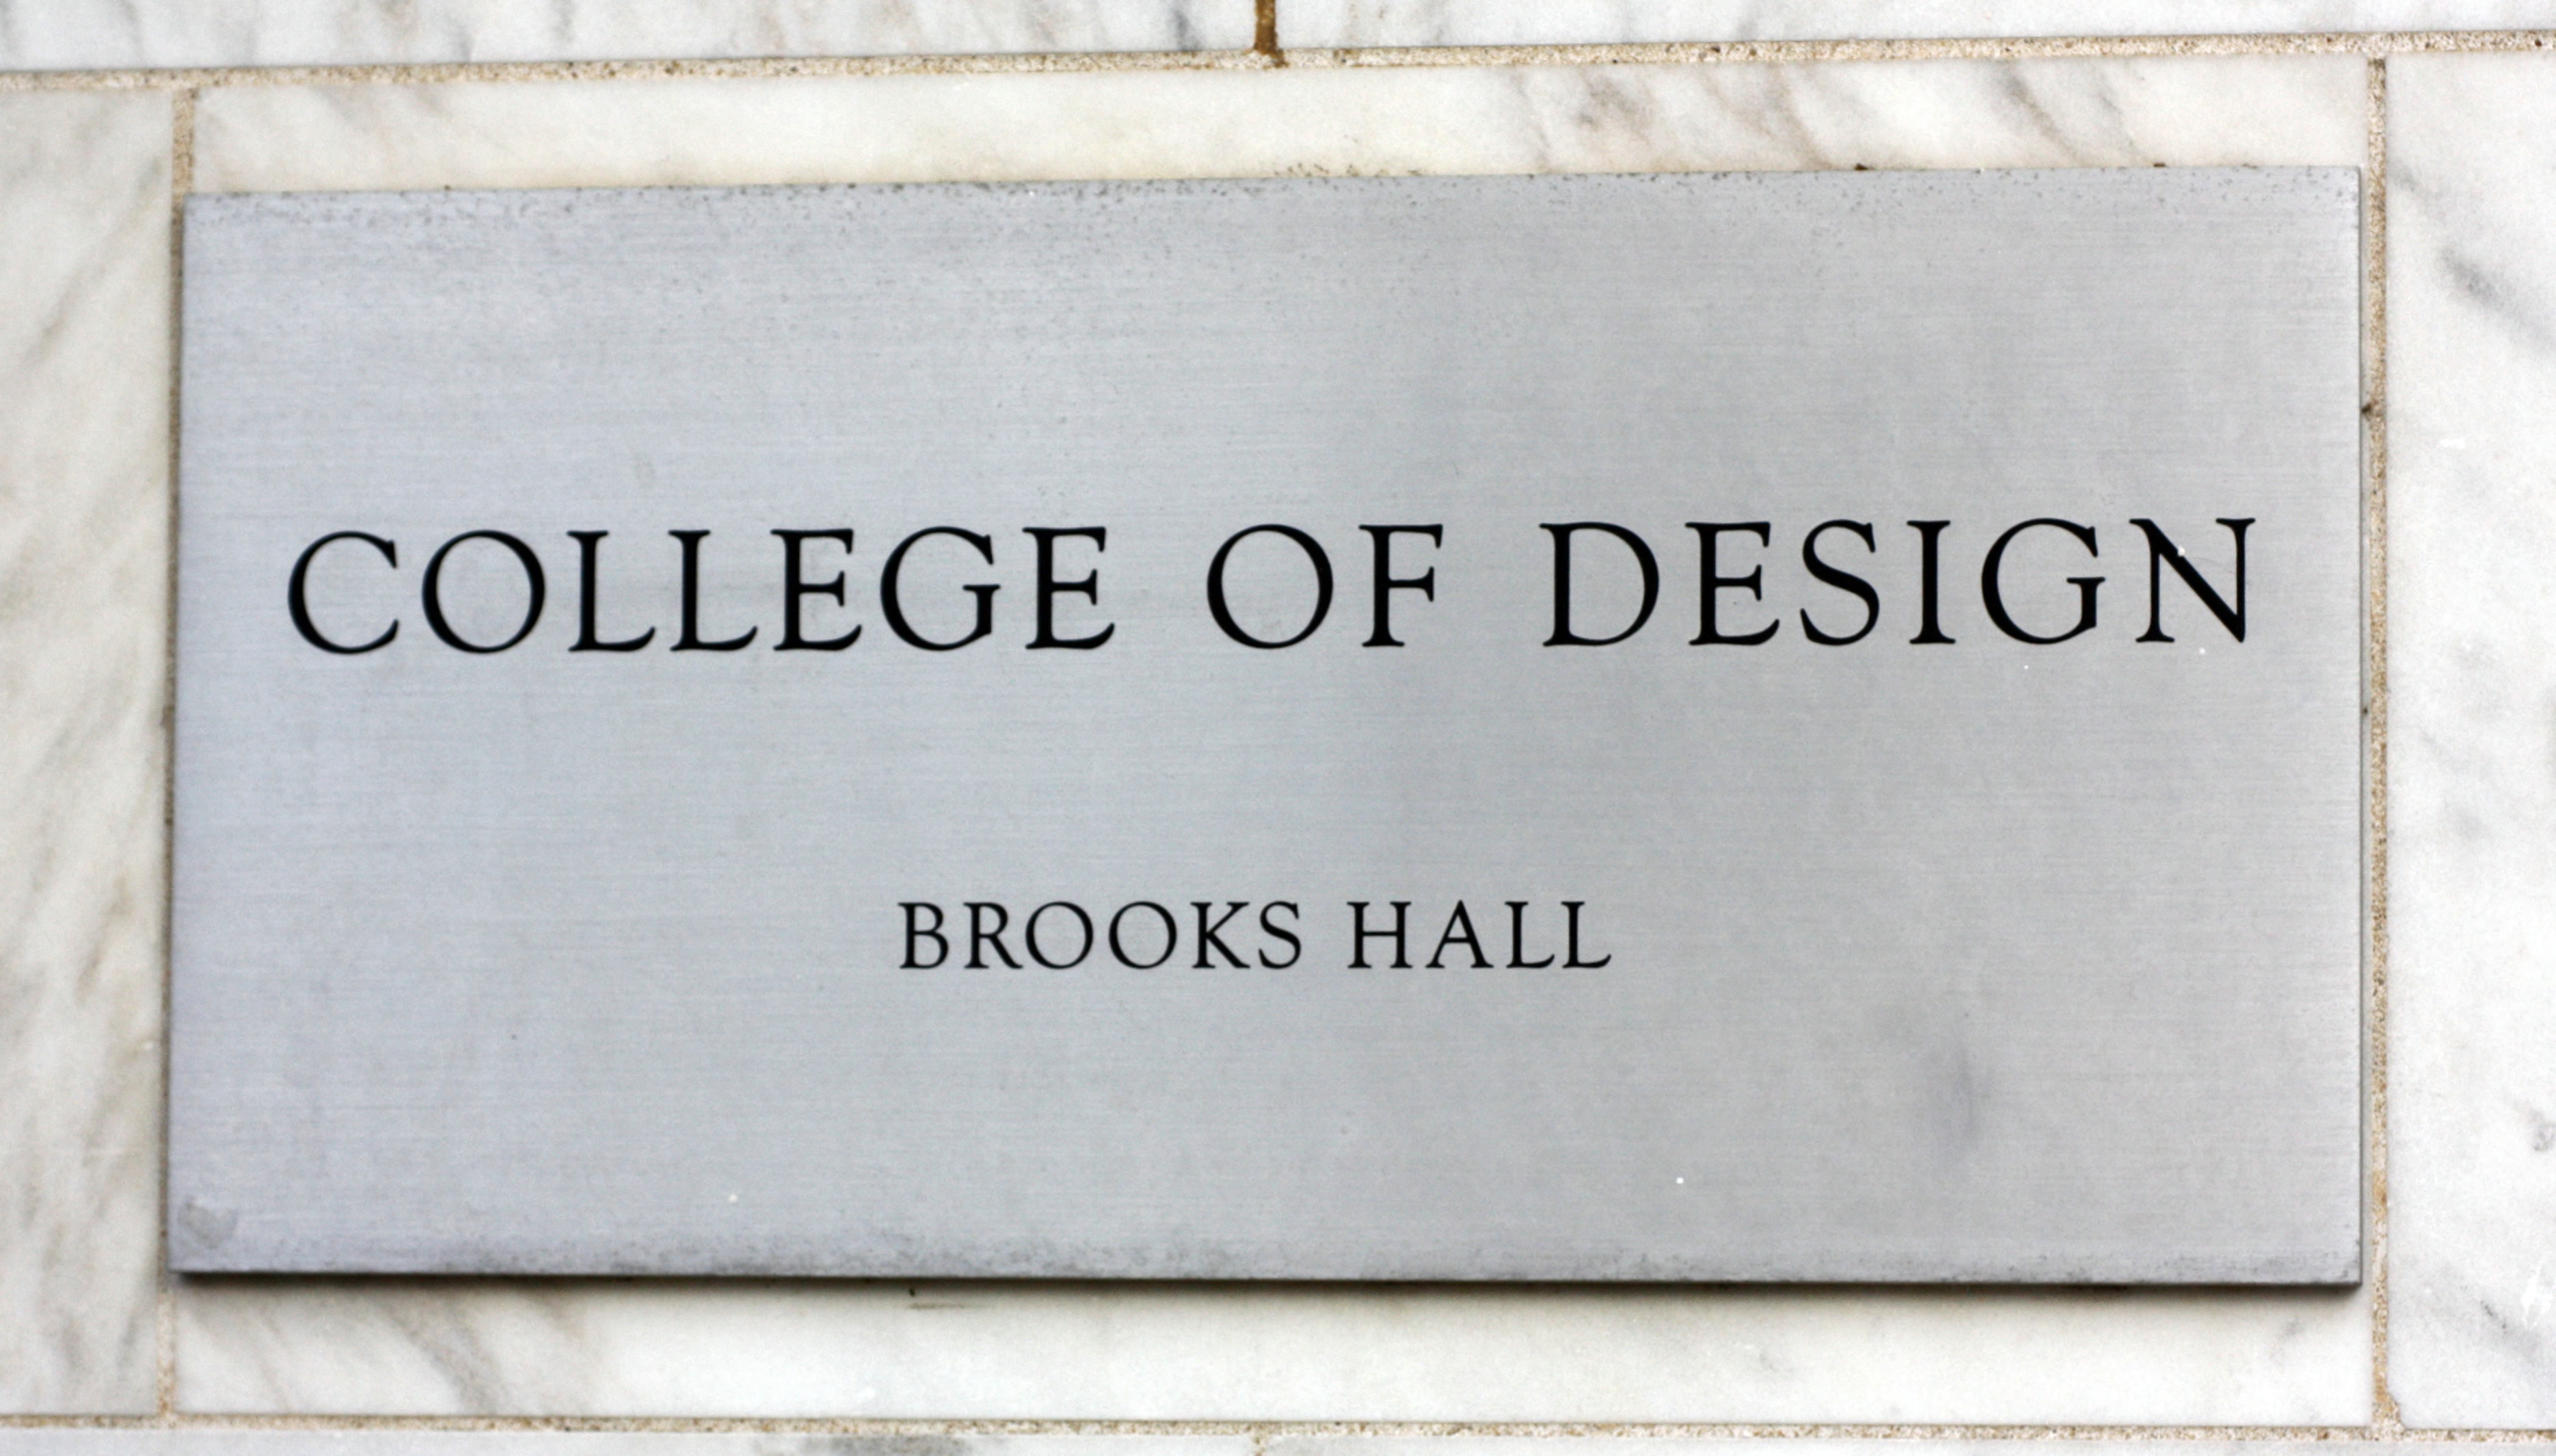 Plaque at Brooks Hall